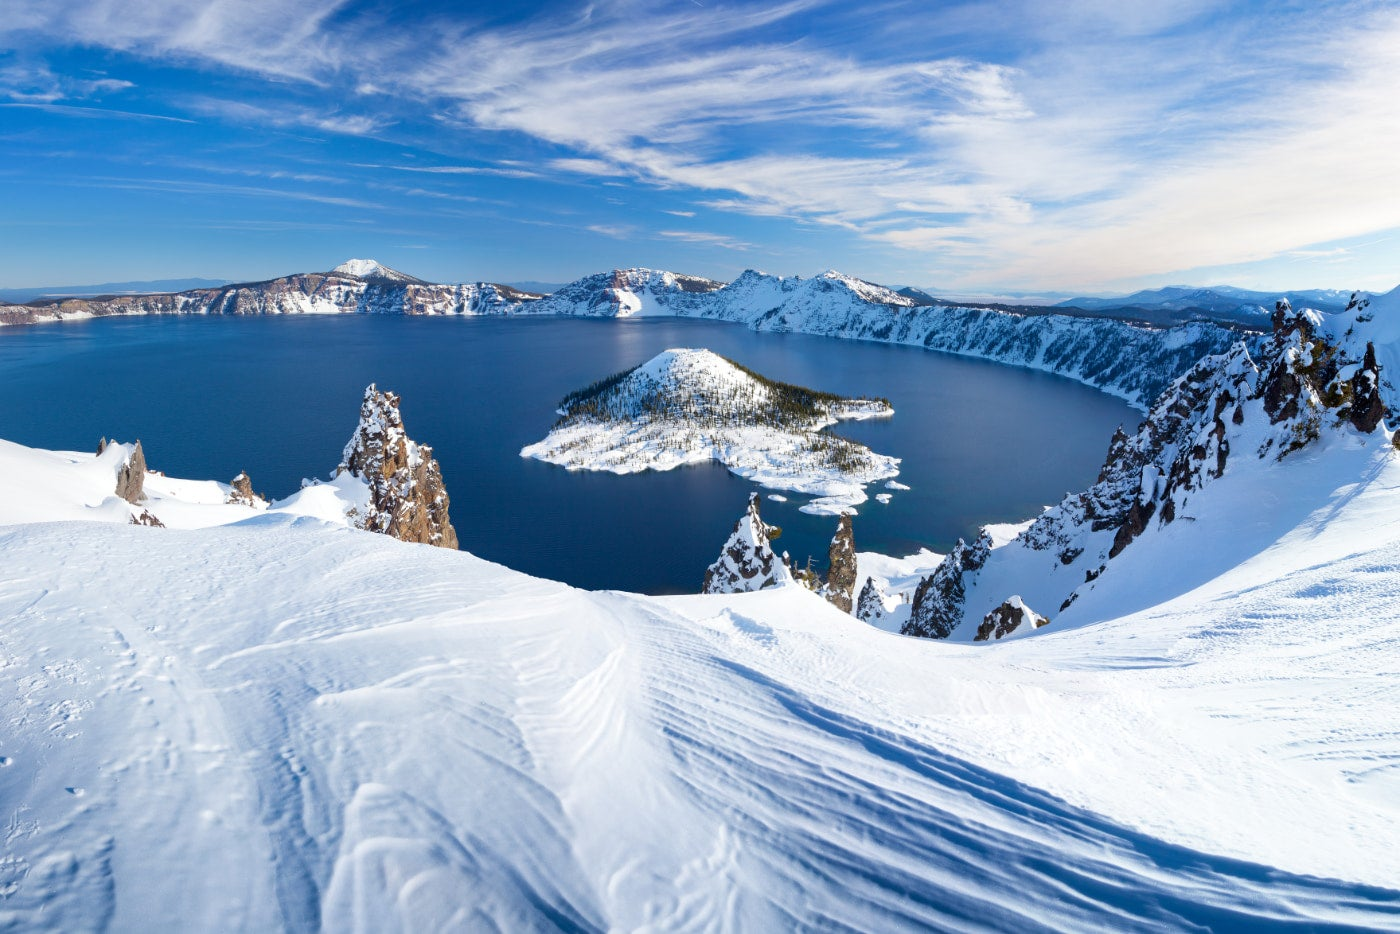 oregon's crater lake surrounded by a heavy layer of snow with Wizard island in the middle of the lake